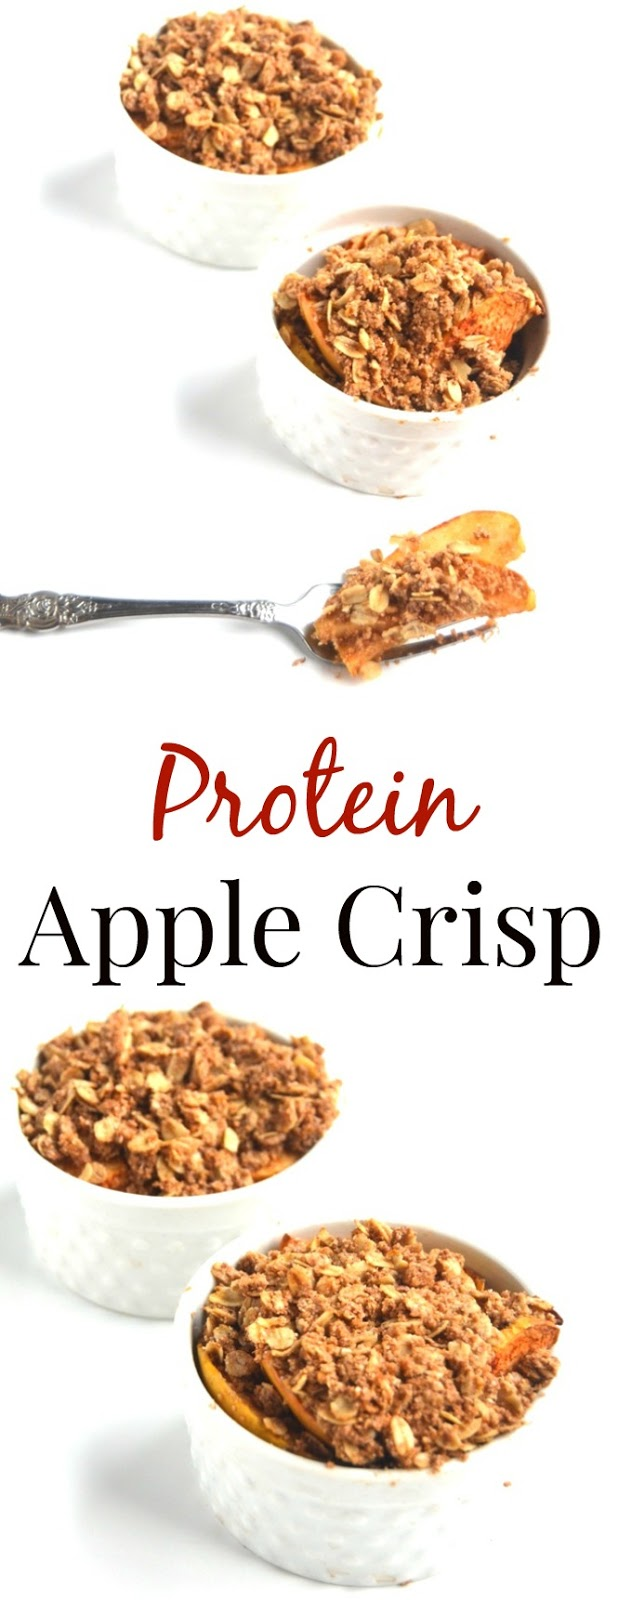 This Protein Apple Crisp is a lighter, healthier version of your favorite crisp made with whole-wheat flour, oats, less sugar and protein for a satisfying, flavorful dessert! www.nutritionistreviews.com